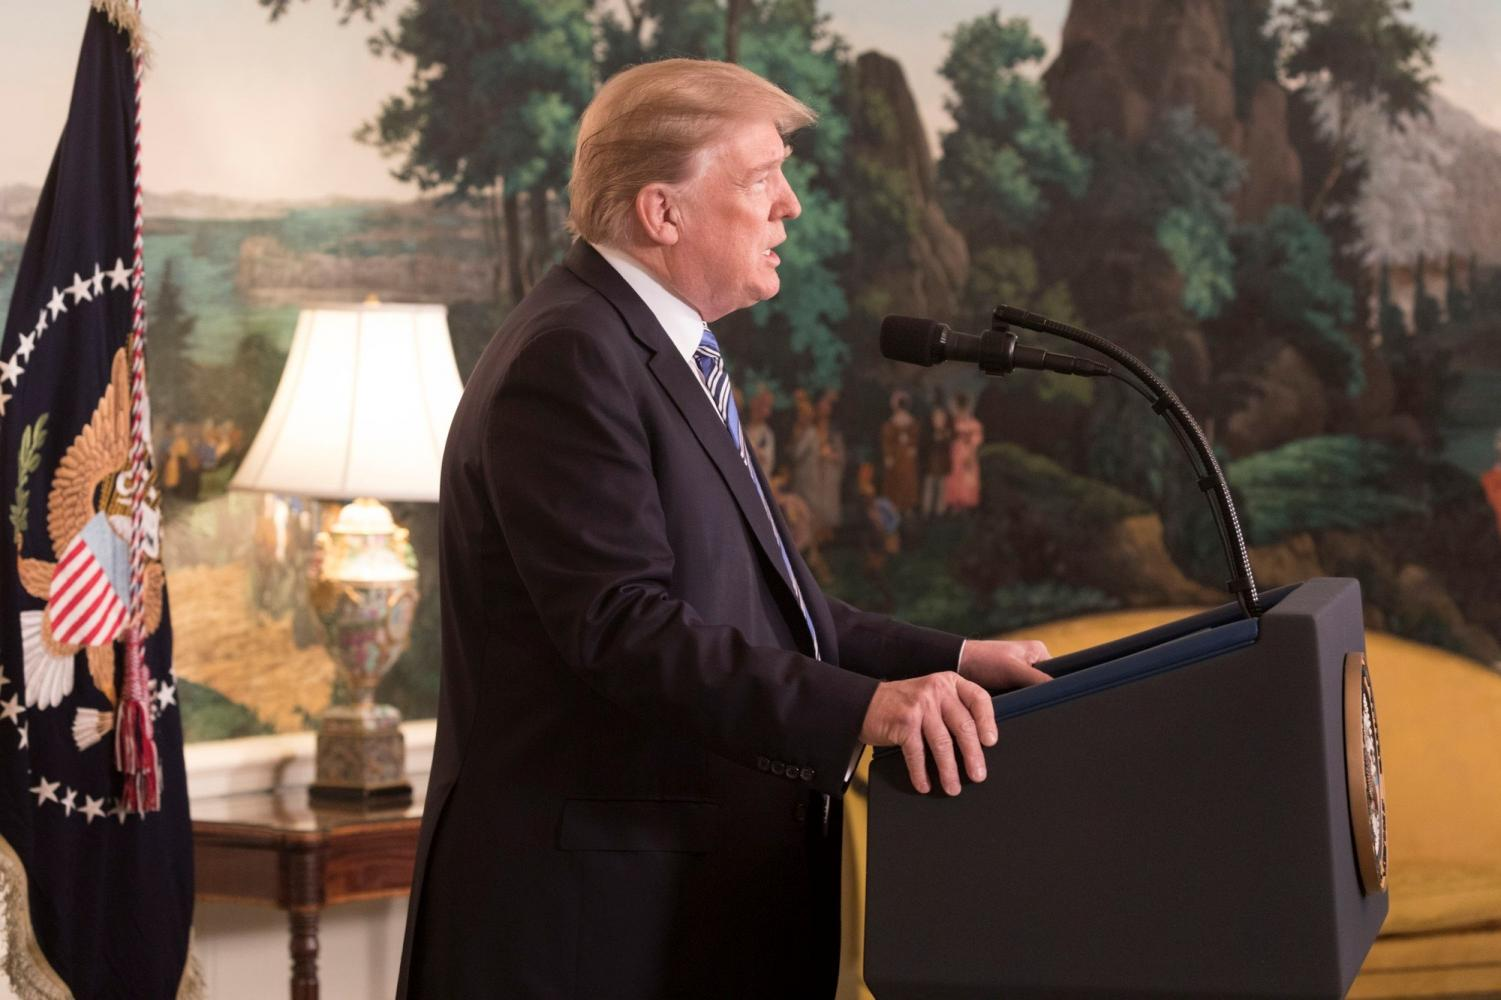 President Trump addressed the nation on Jan. 8 to discuss the government shutdown and a proposed border wall.